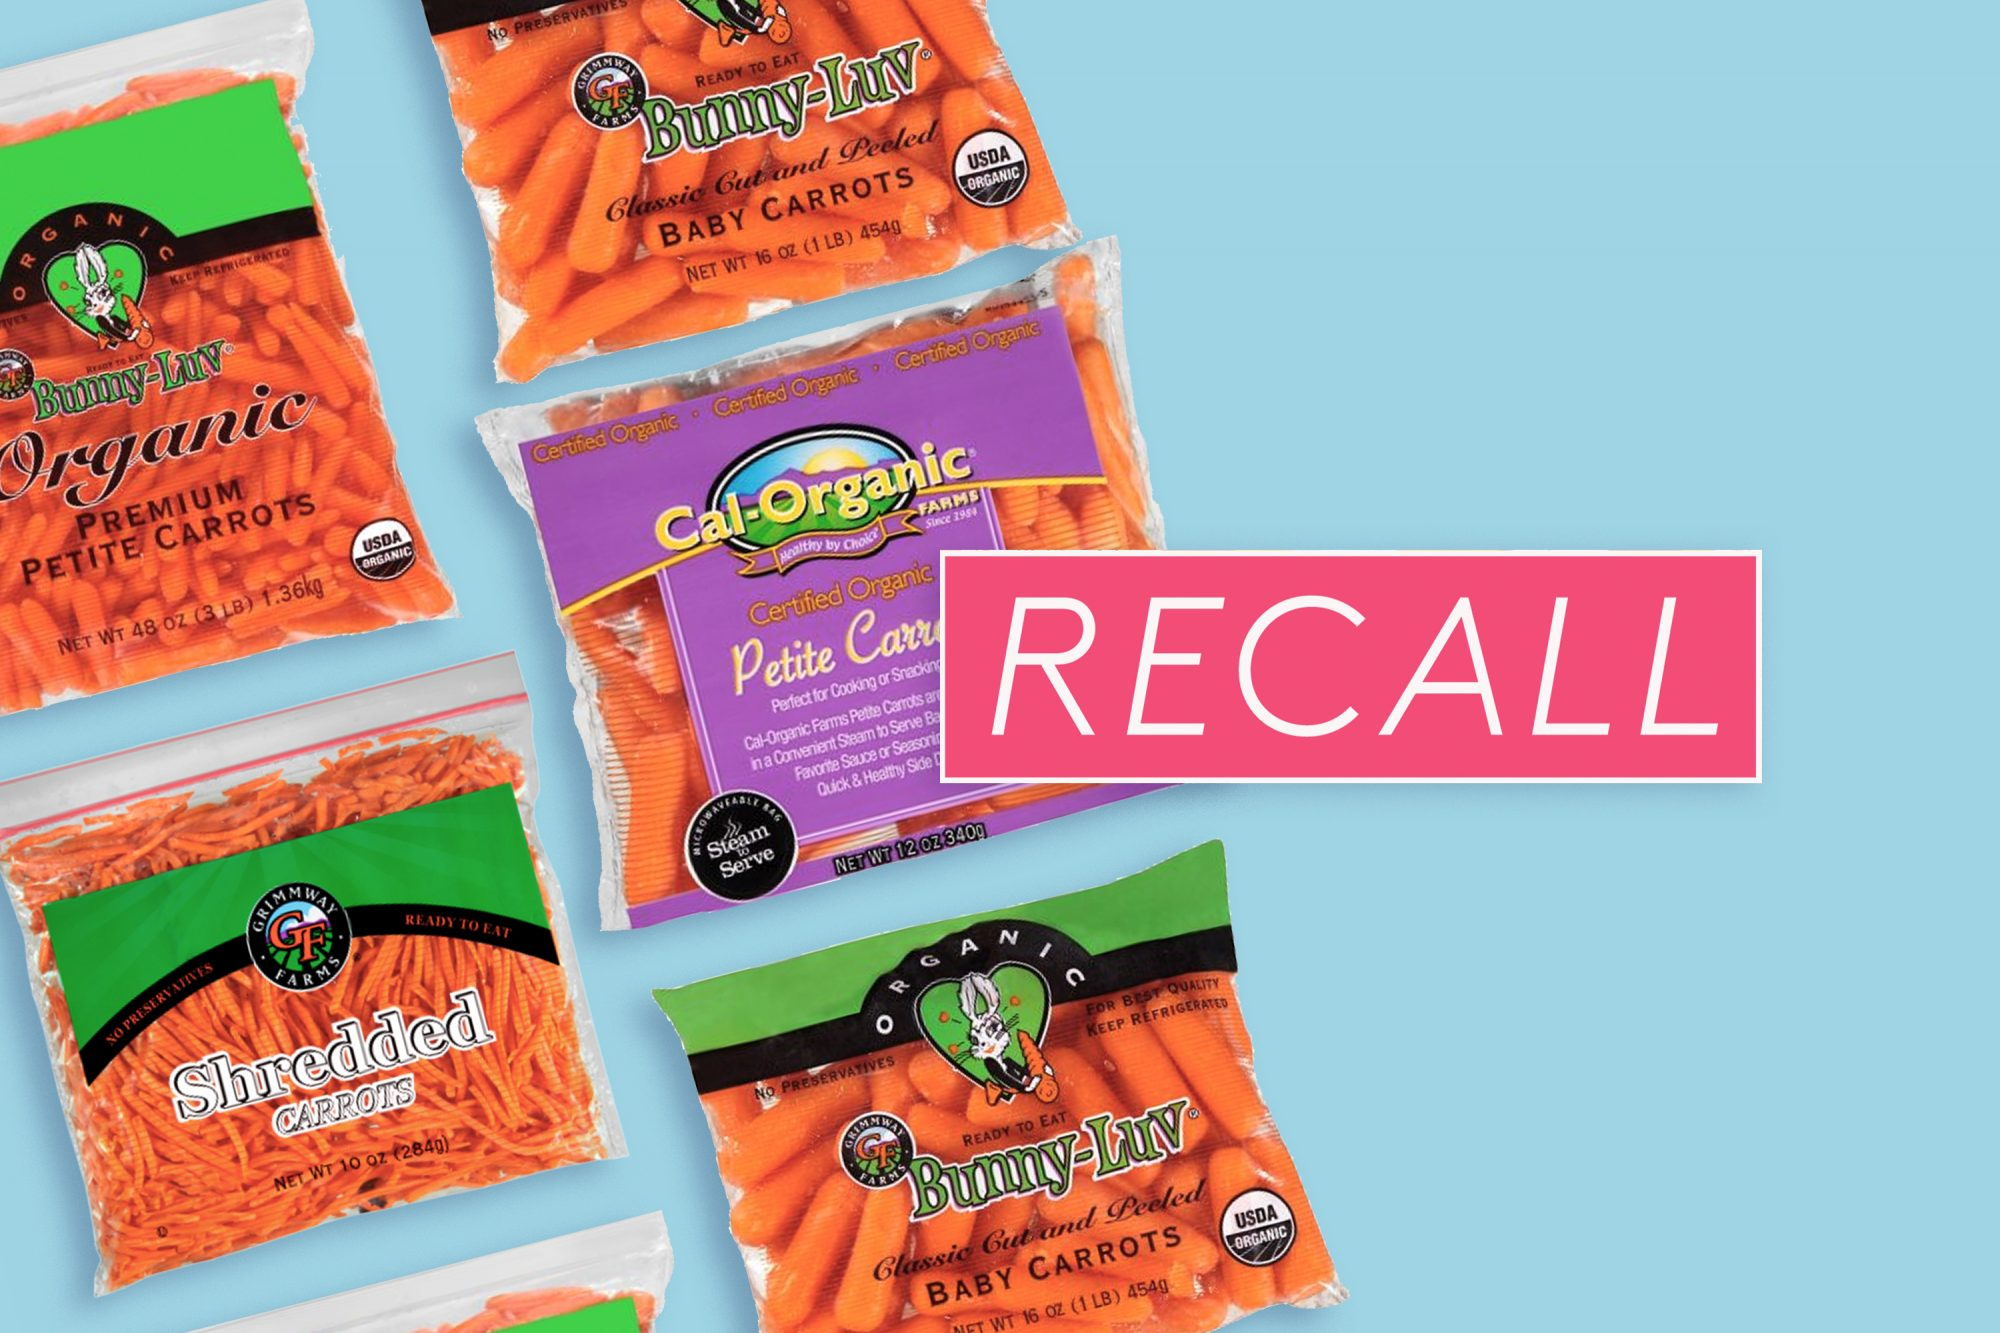 Carrot Recall: California Company Announces Possible Salmonella Contamination in Baby and Shredded Carrots